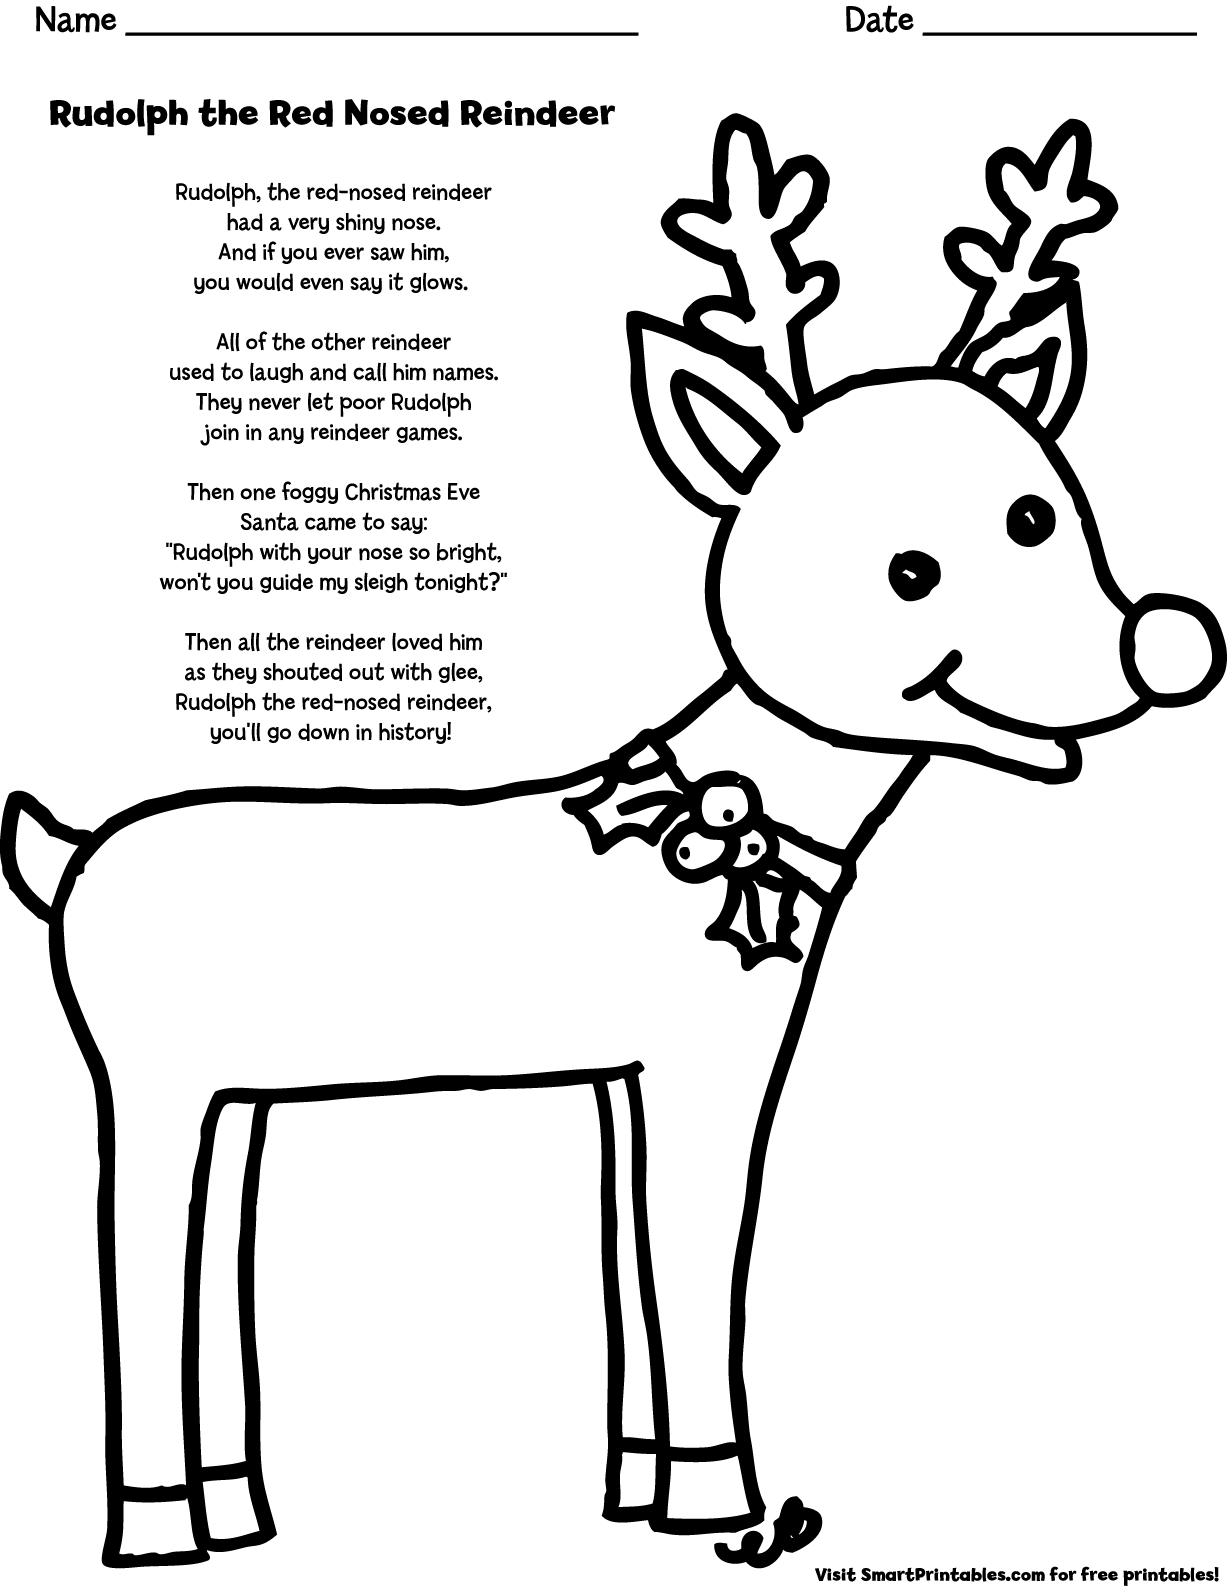 rudolph the red nosed reindeer coloring page rudolph the red nosed reindeer coloring page carol nosed reindeer rudolph page the red coloring